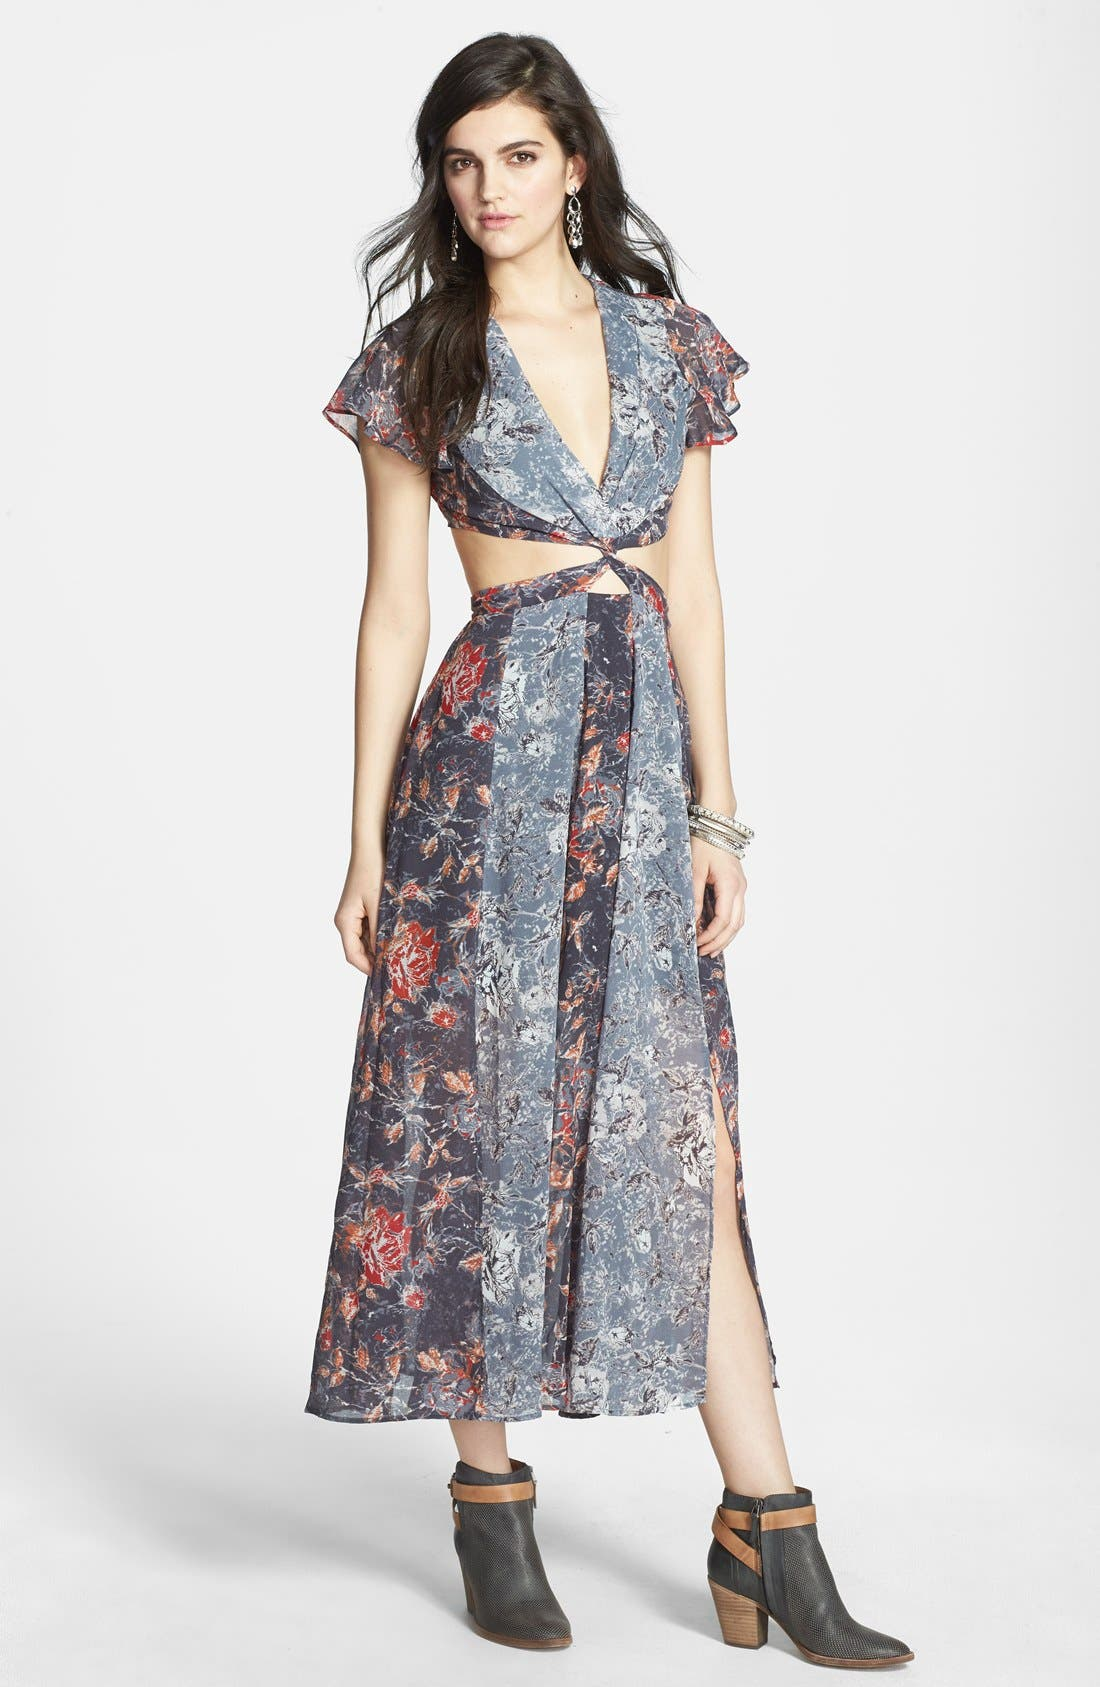 FREE PEOPLE,                             'Jasper' Mixed Print Twist Cutout Dress,                             Main thumbnail 1, color,                             400